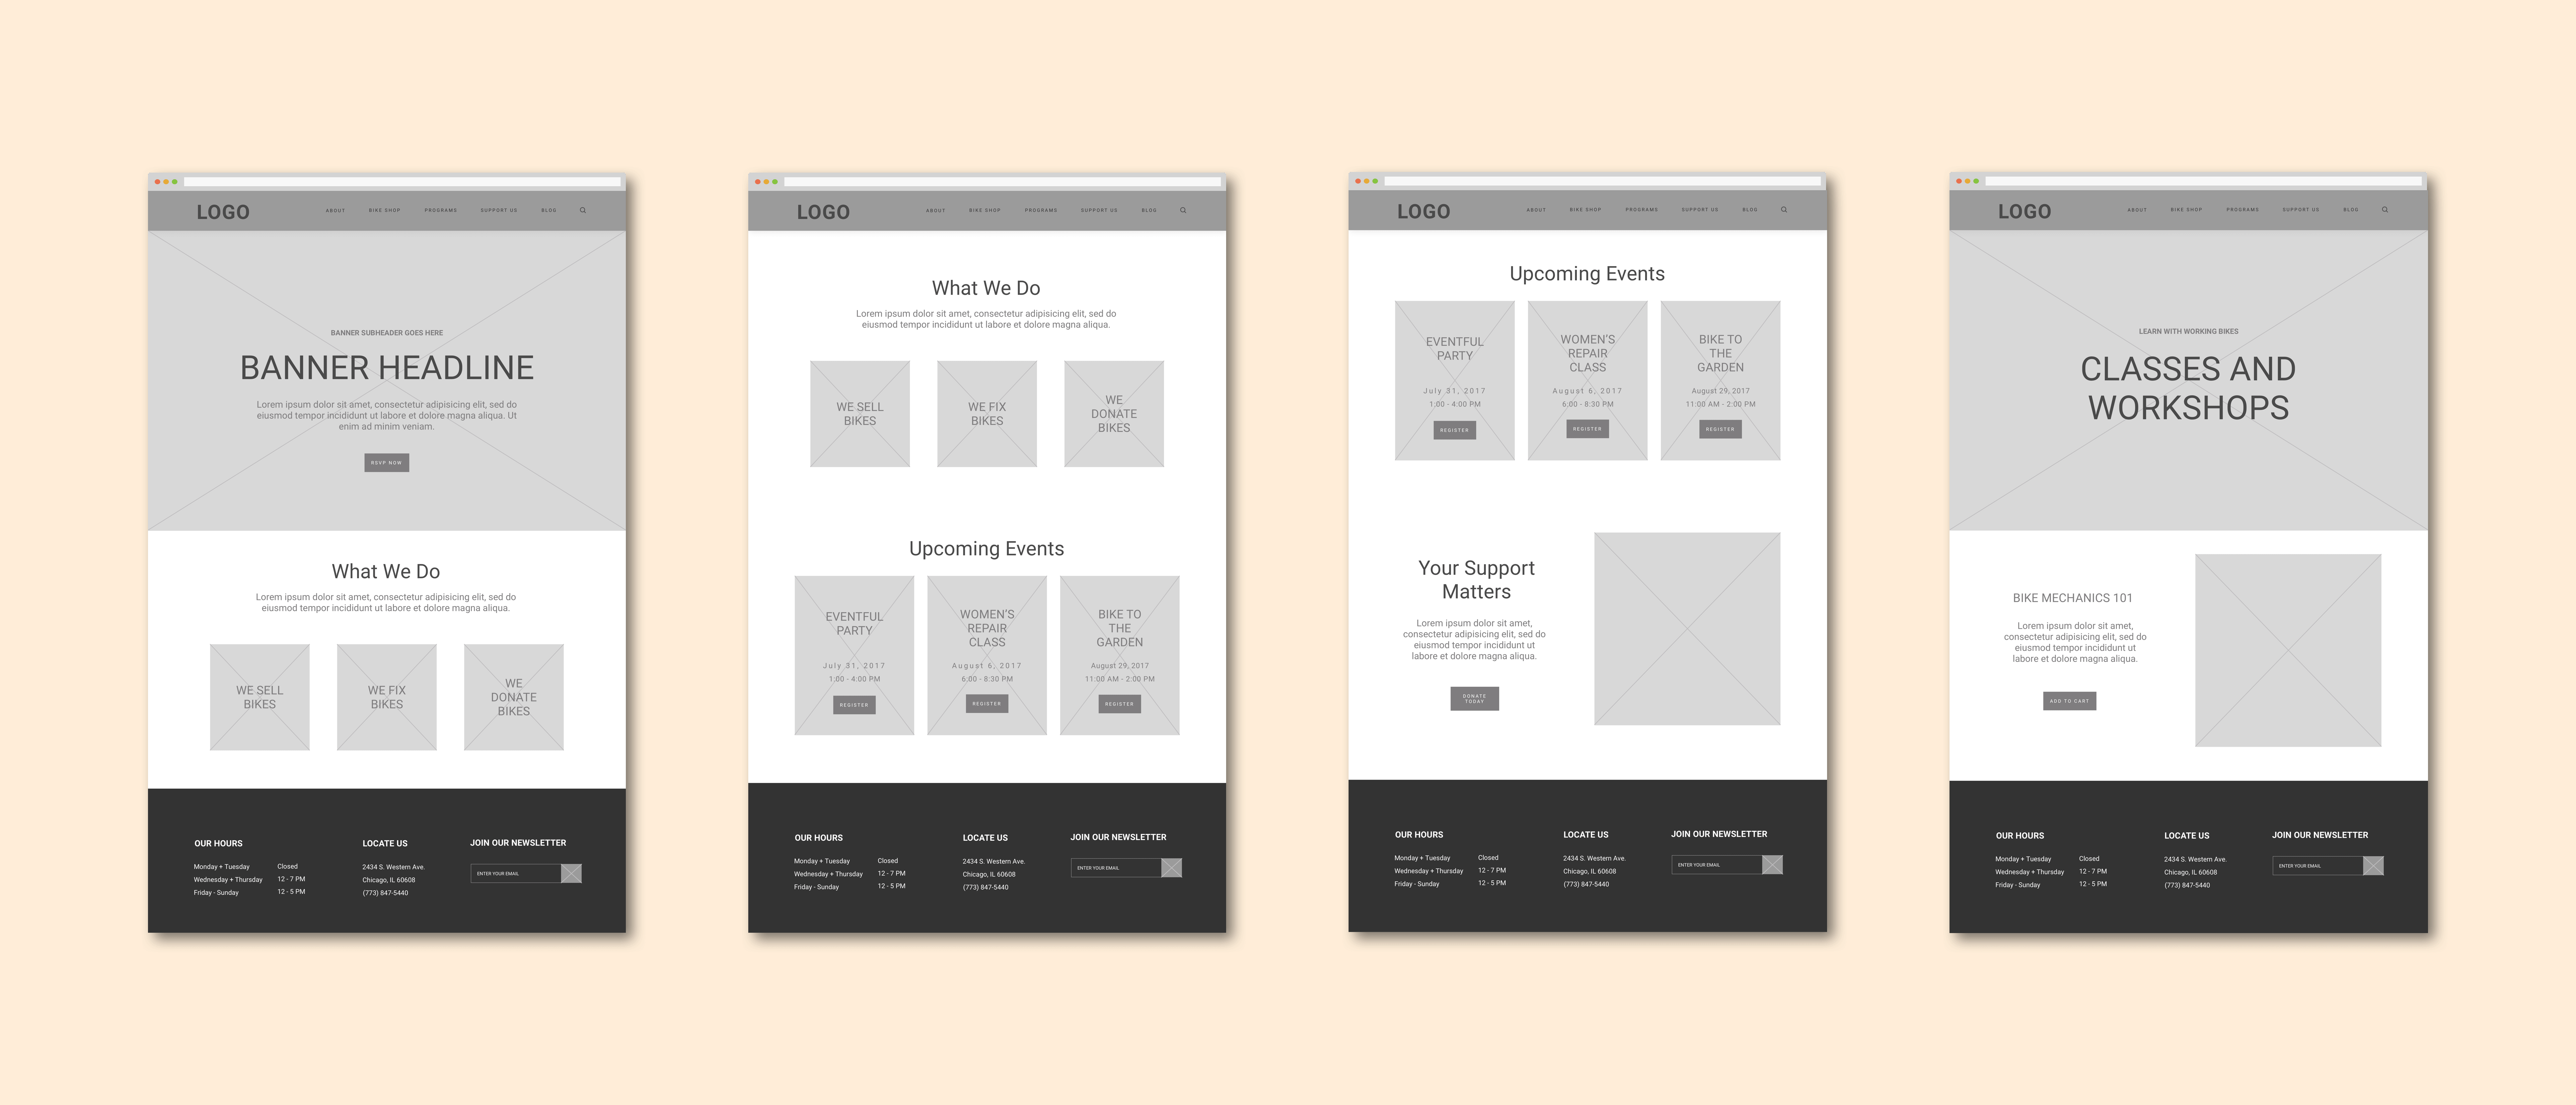 A set of four mid-fidelity, greyscale wireframes representing key pages of the website, including the home page and a page for classes and workshops.